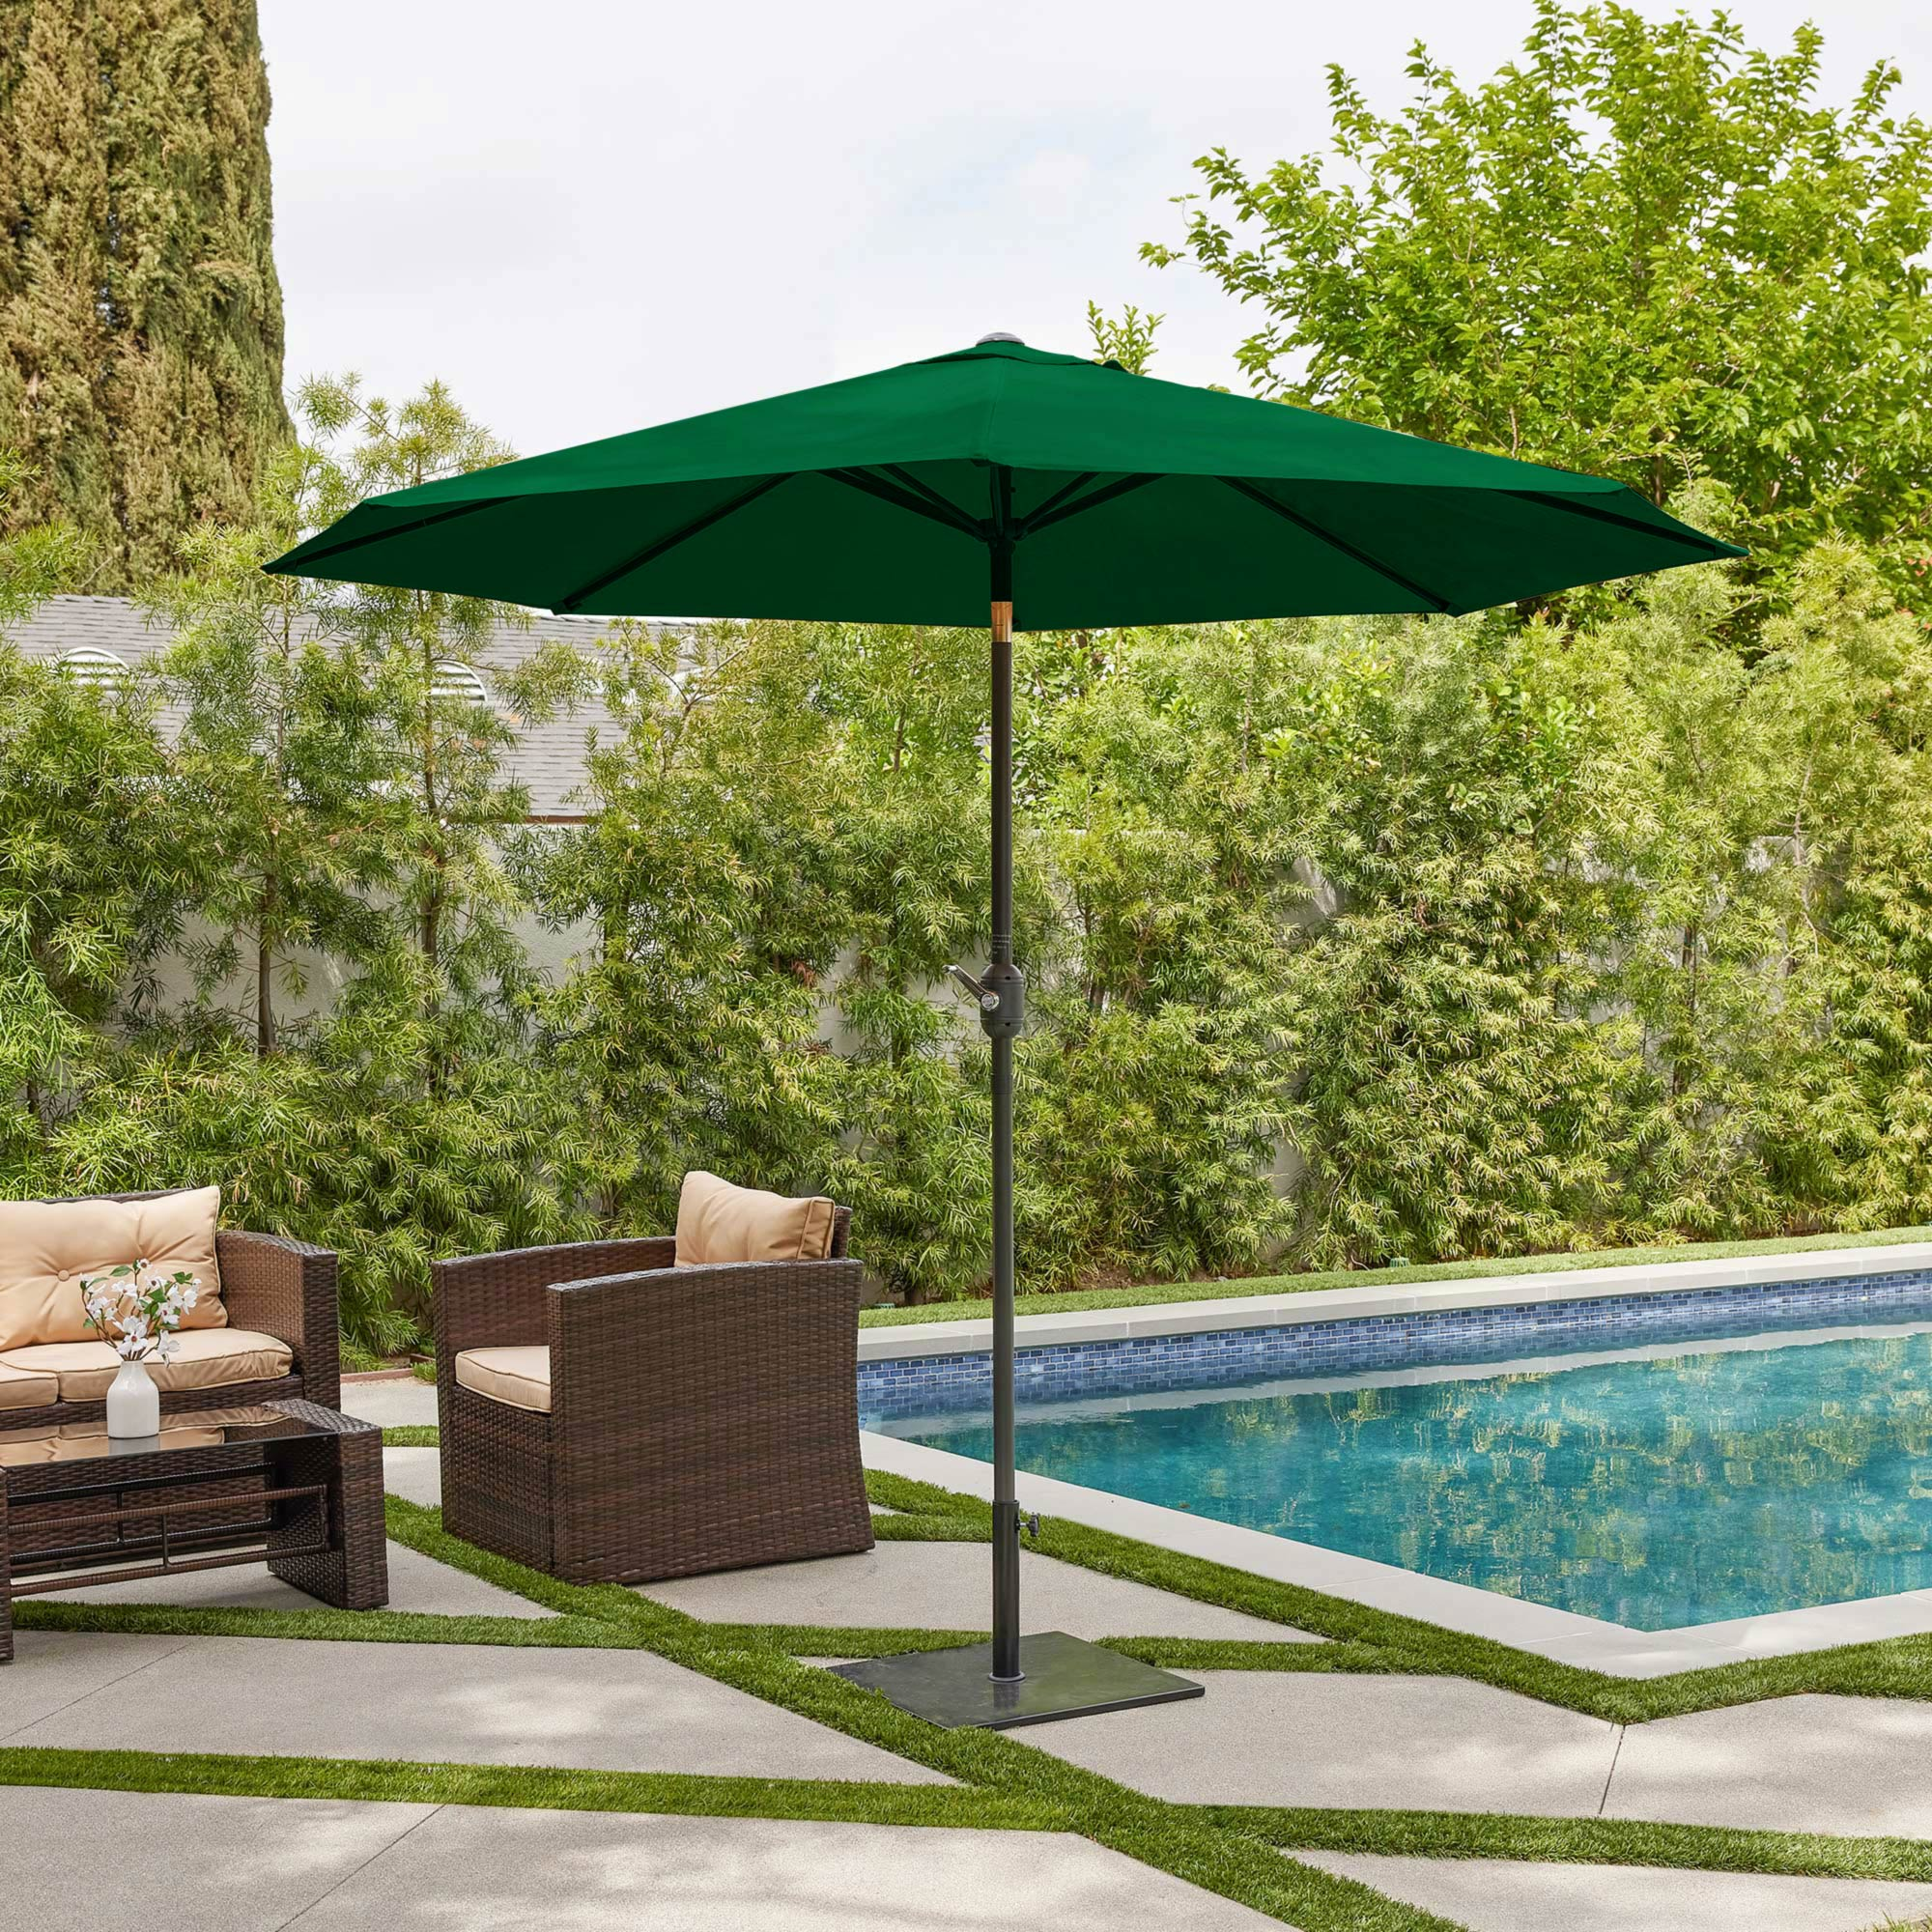 belleze 9 ft outdoor patio lawn umbrella uv resistant water resistant canopy cover shade with tilt function lawn